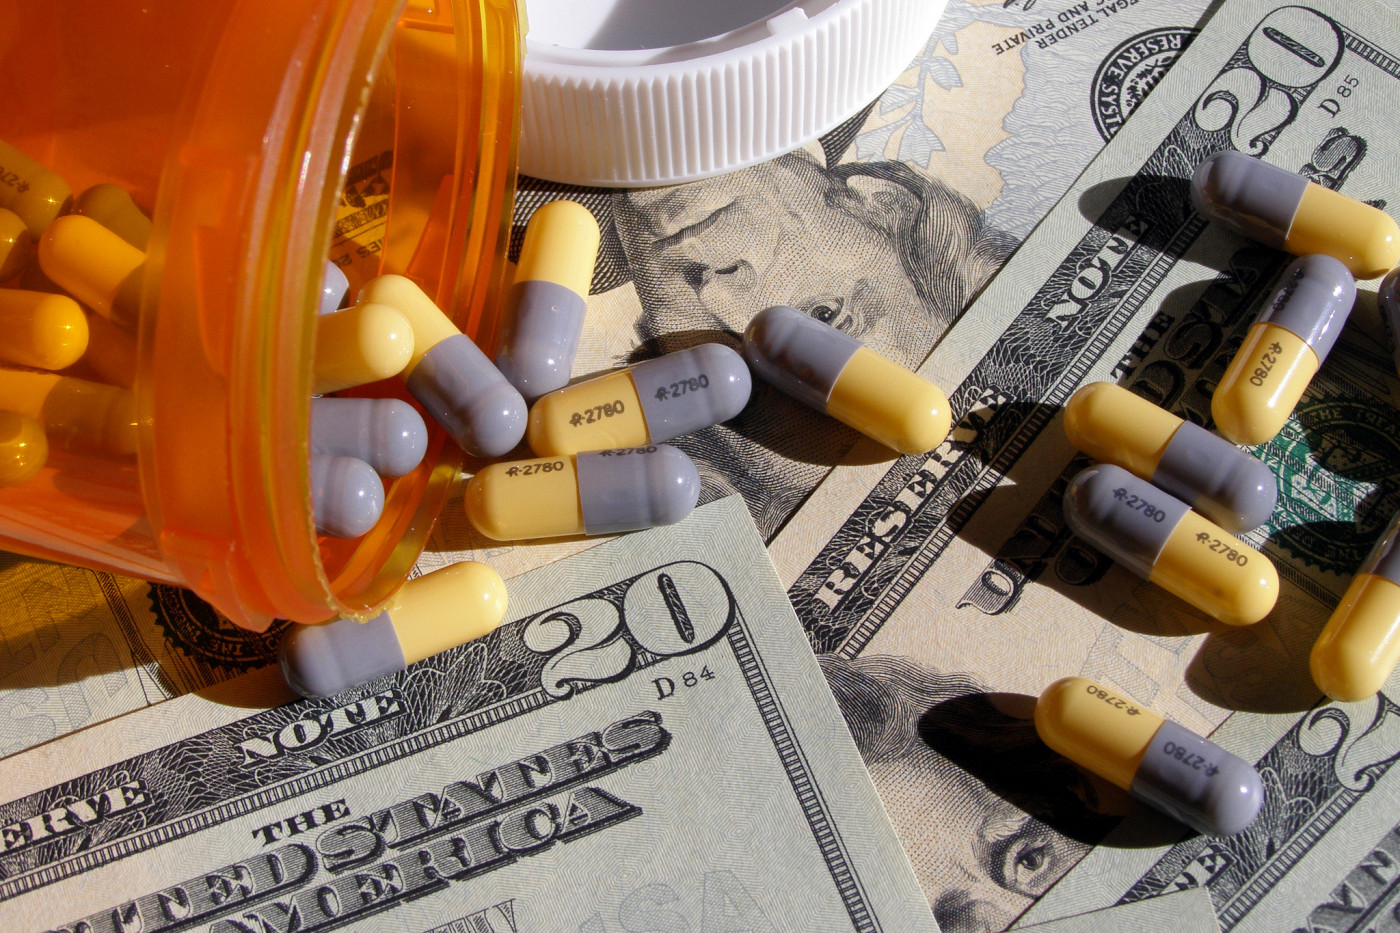 Spinraza treatment cost-effectiveness